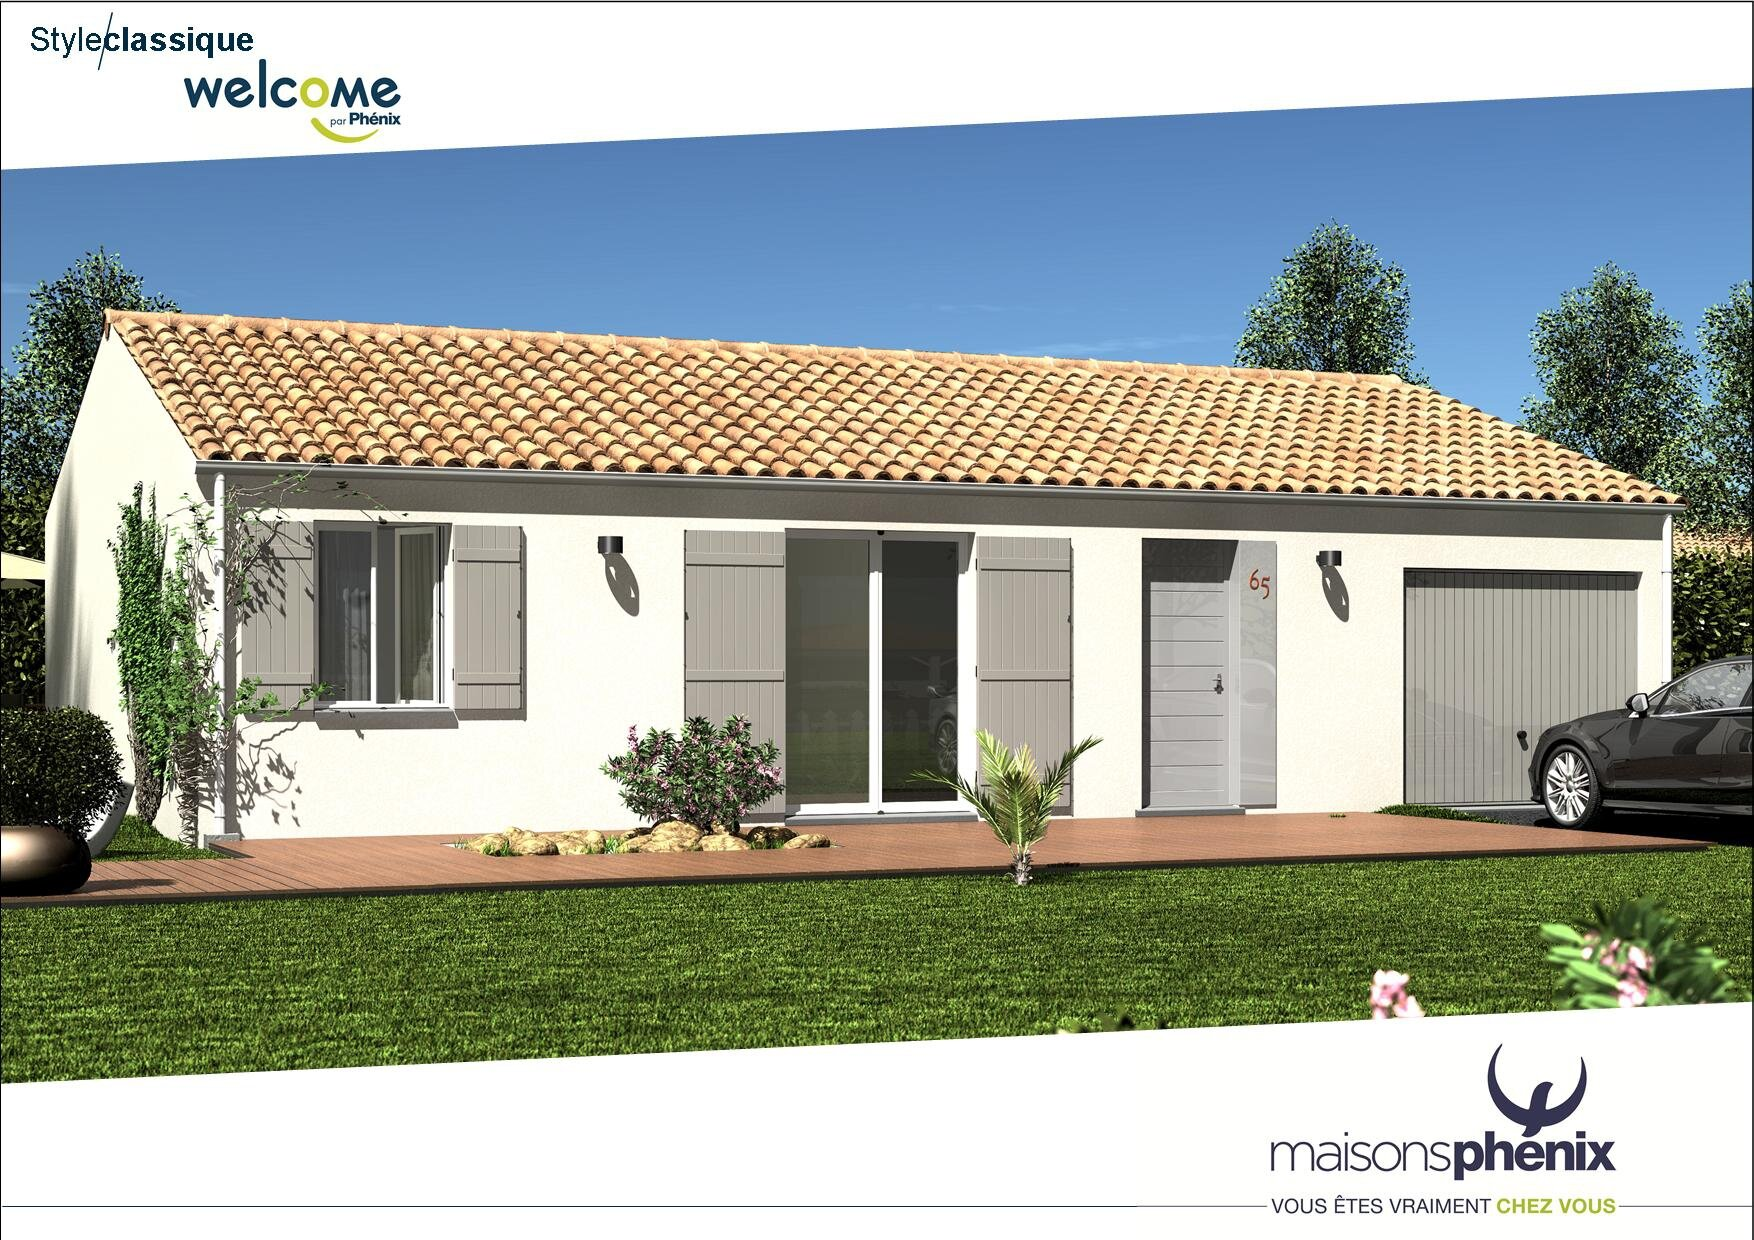 1764 lot 8 a long ves votre maison ph nix welcome 90m avec garage agence immobiliere - Maison phenix modele ...